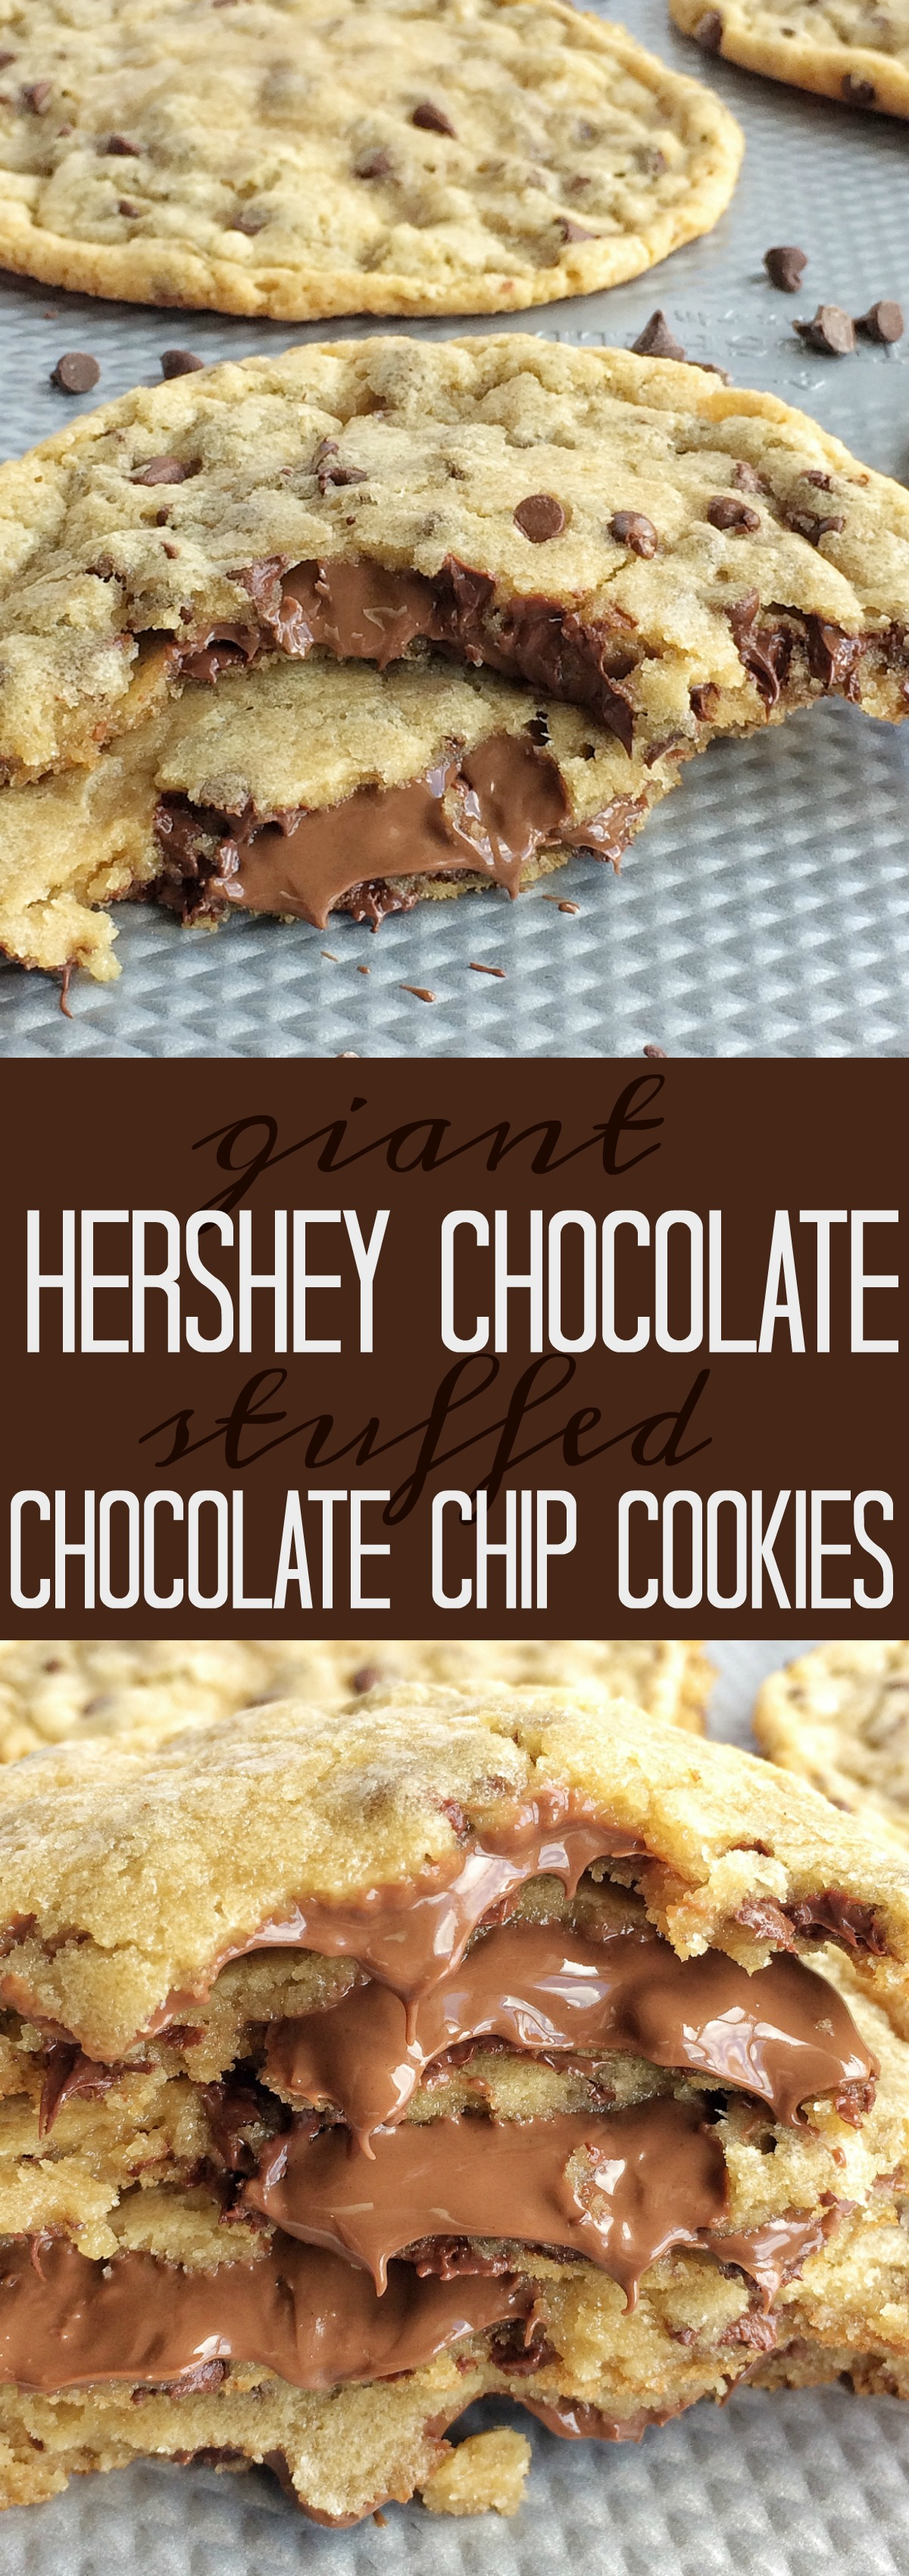 Recipe for giant choc chip cookies